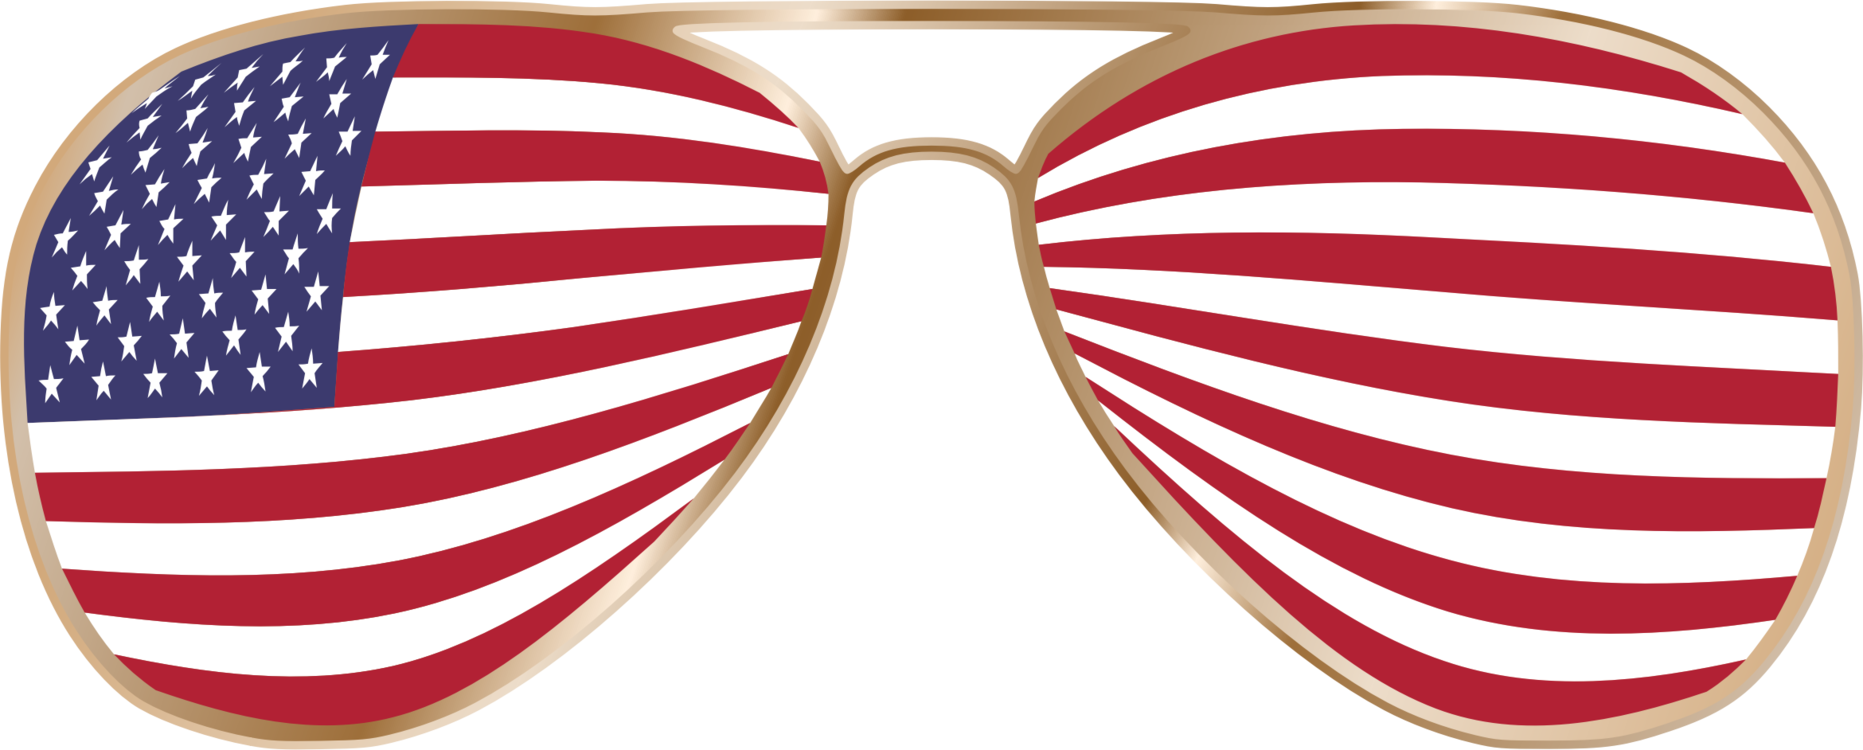 American vector sunglasses. Goggles united states of